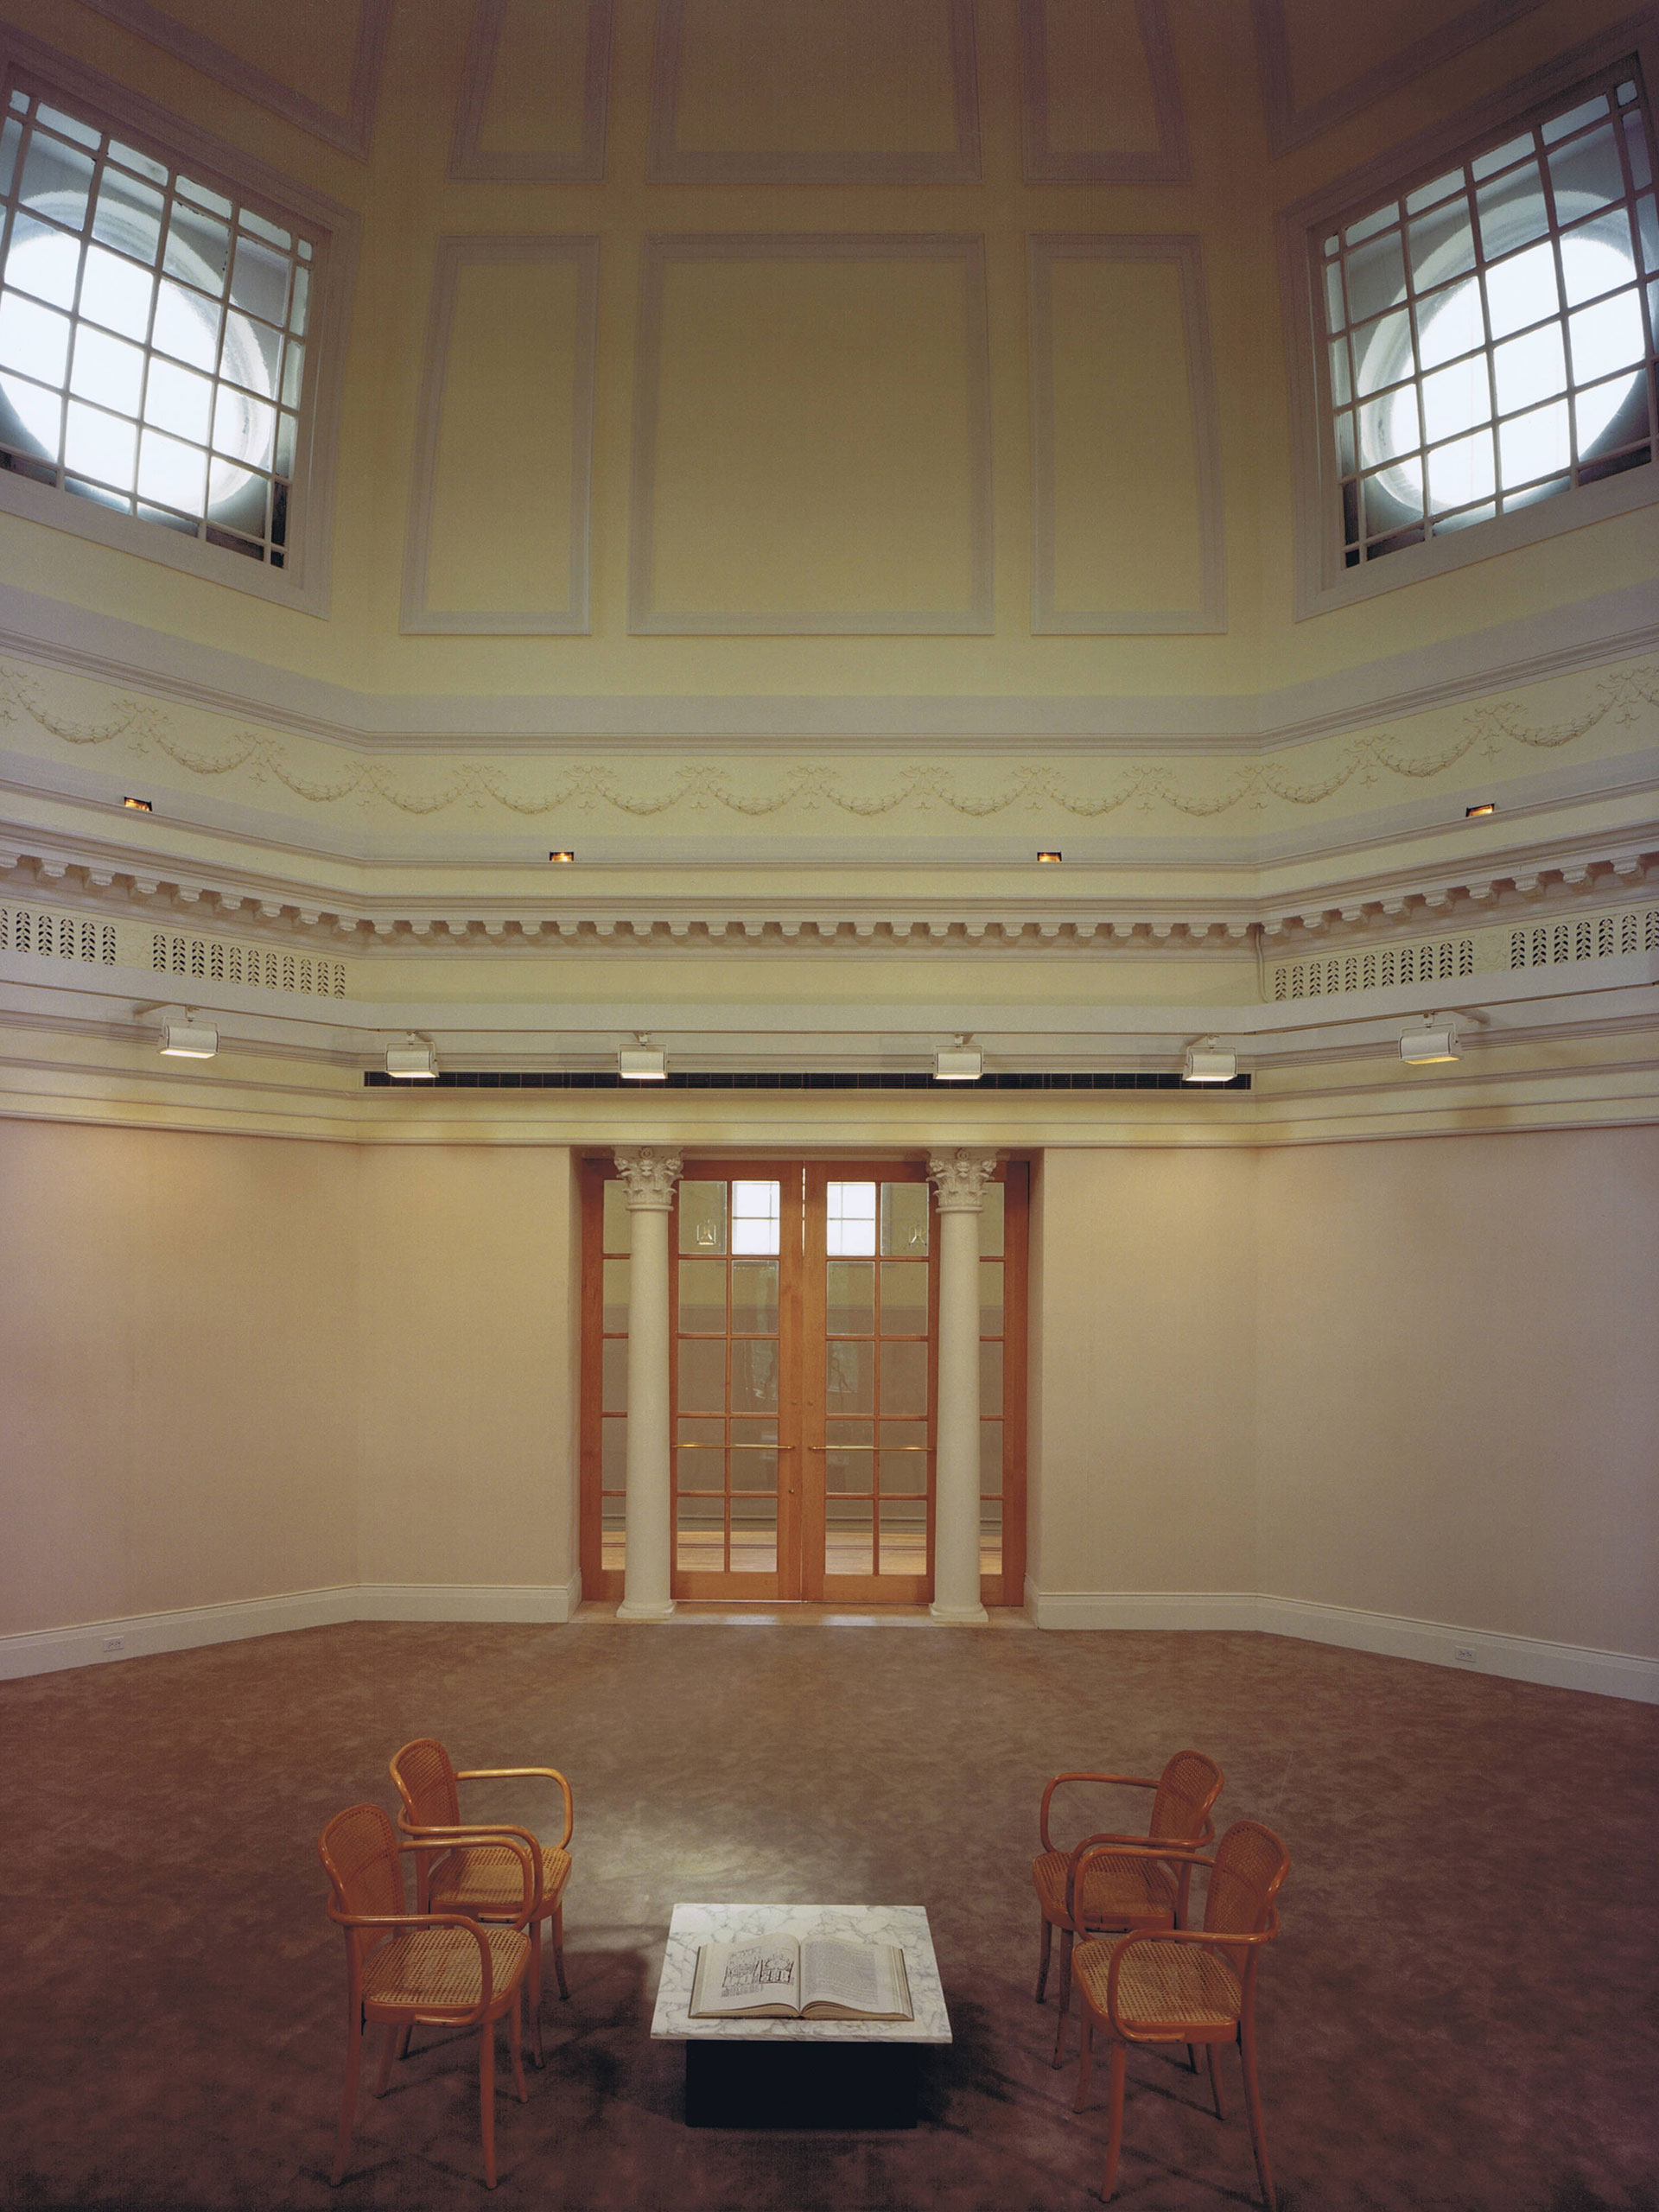 After the renovation, the small entrances were sealed, and larger entrances were added to the east and west sides. This moved the entrances away from classroom entrances to reduce distractions to other students. Additionally, the dome was opened up, allowing light from four large windows to illuminate the rotunda.